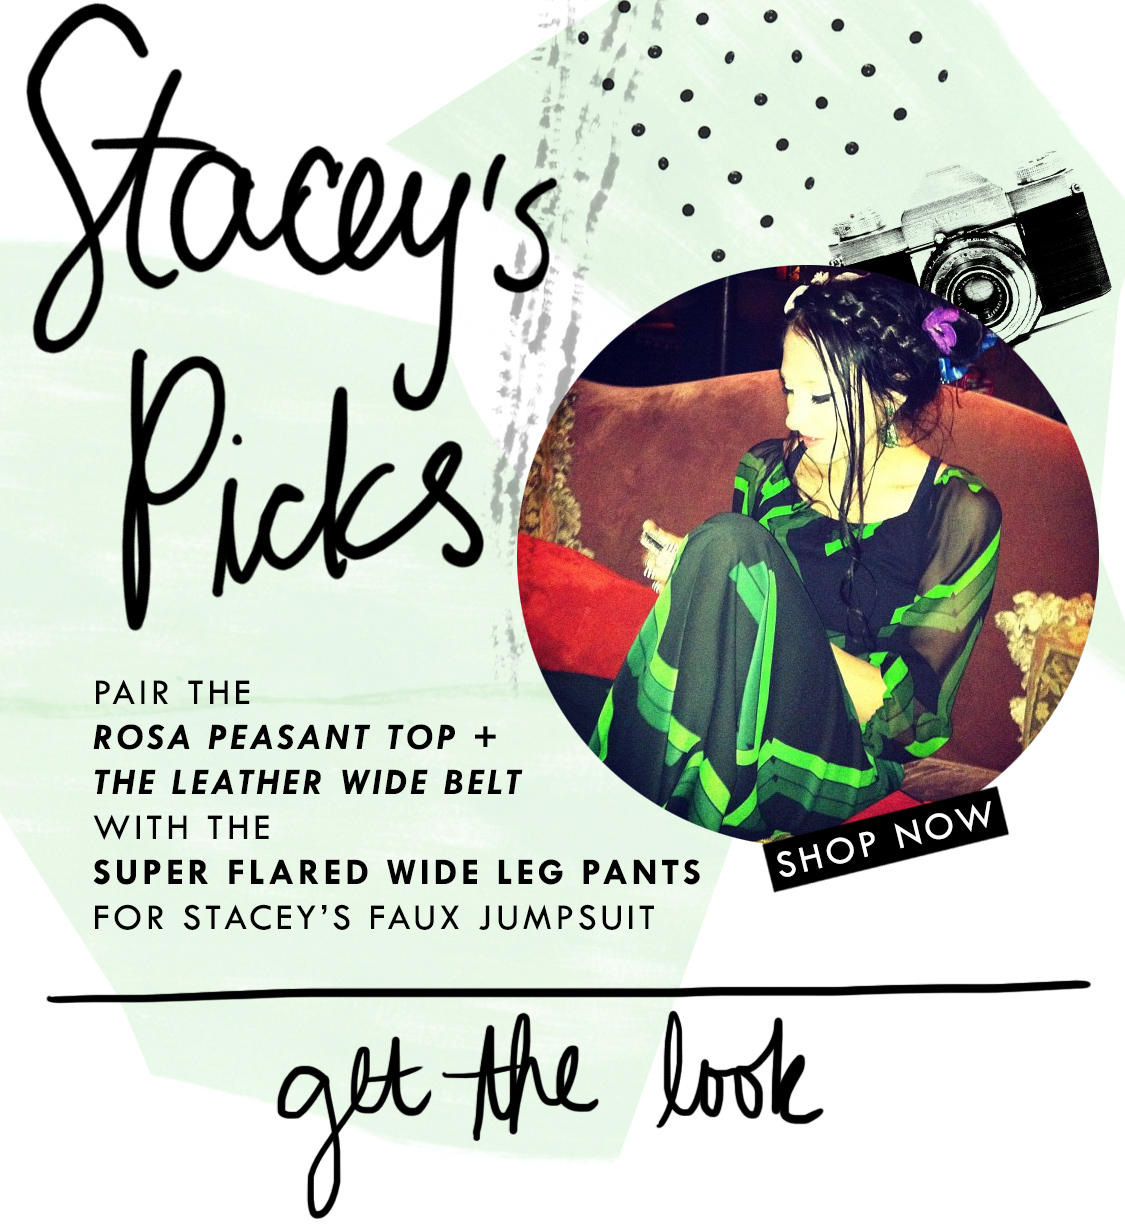 Stacey's Picks